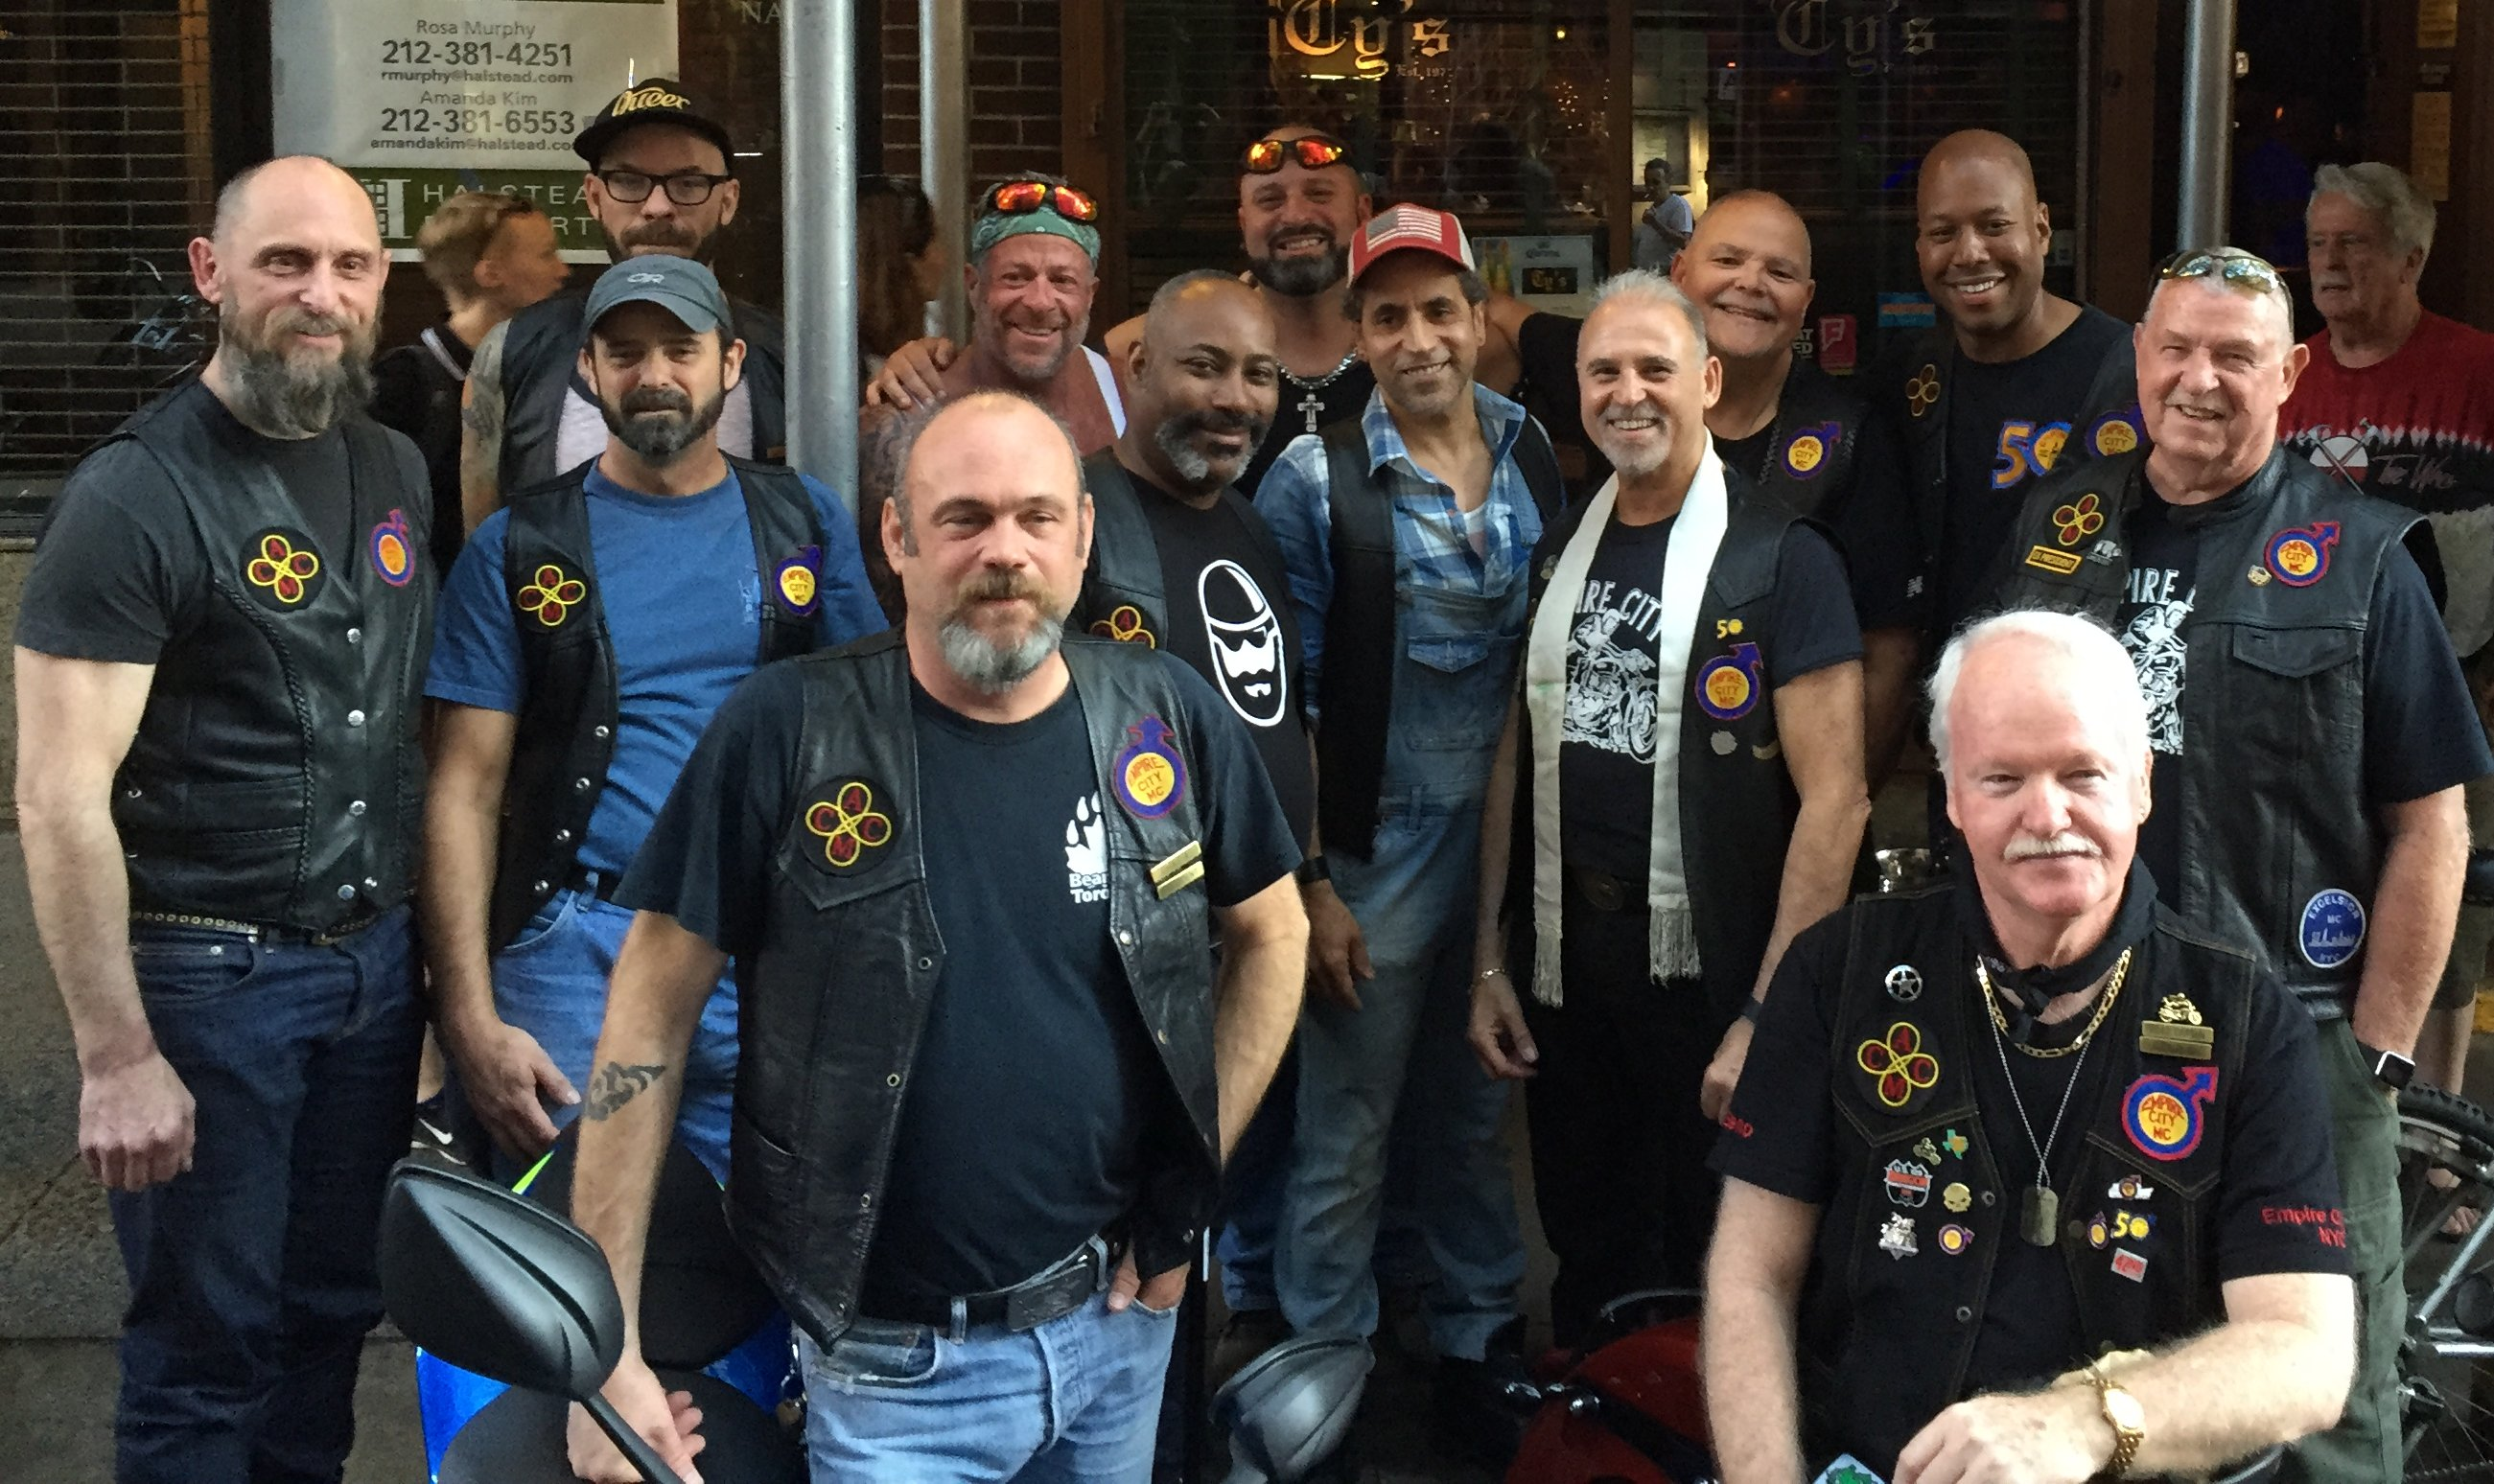 mc connellsville gay singles Meet local bikers in your area that are looking for dating other bikers meet bikers is a place where local biker singles and friends to meet up to find love.